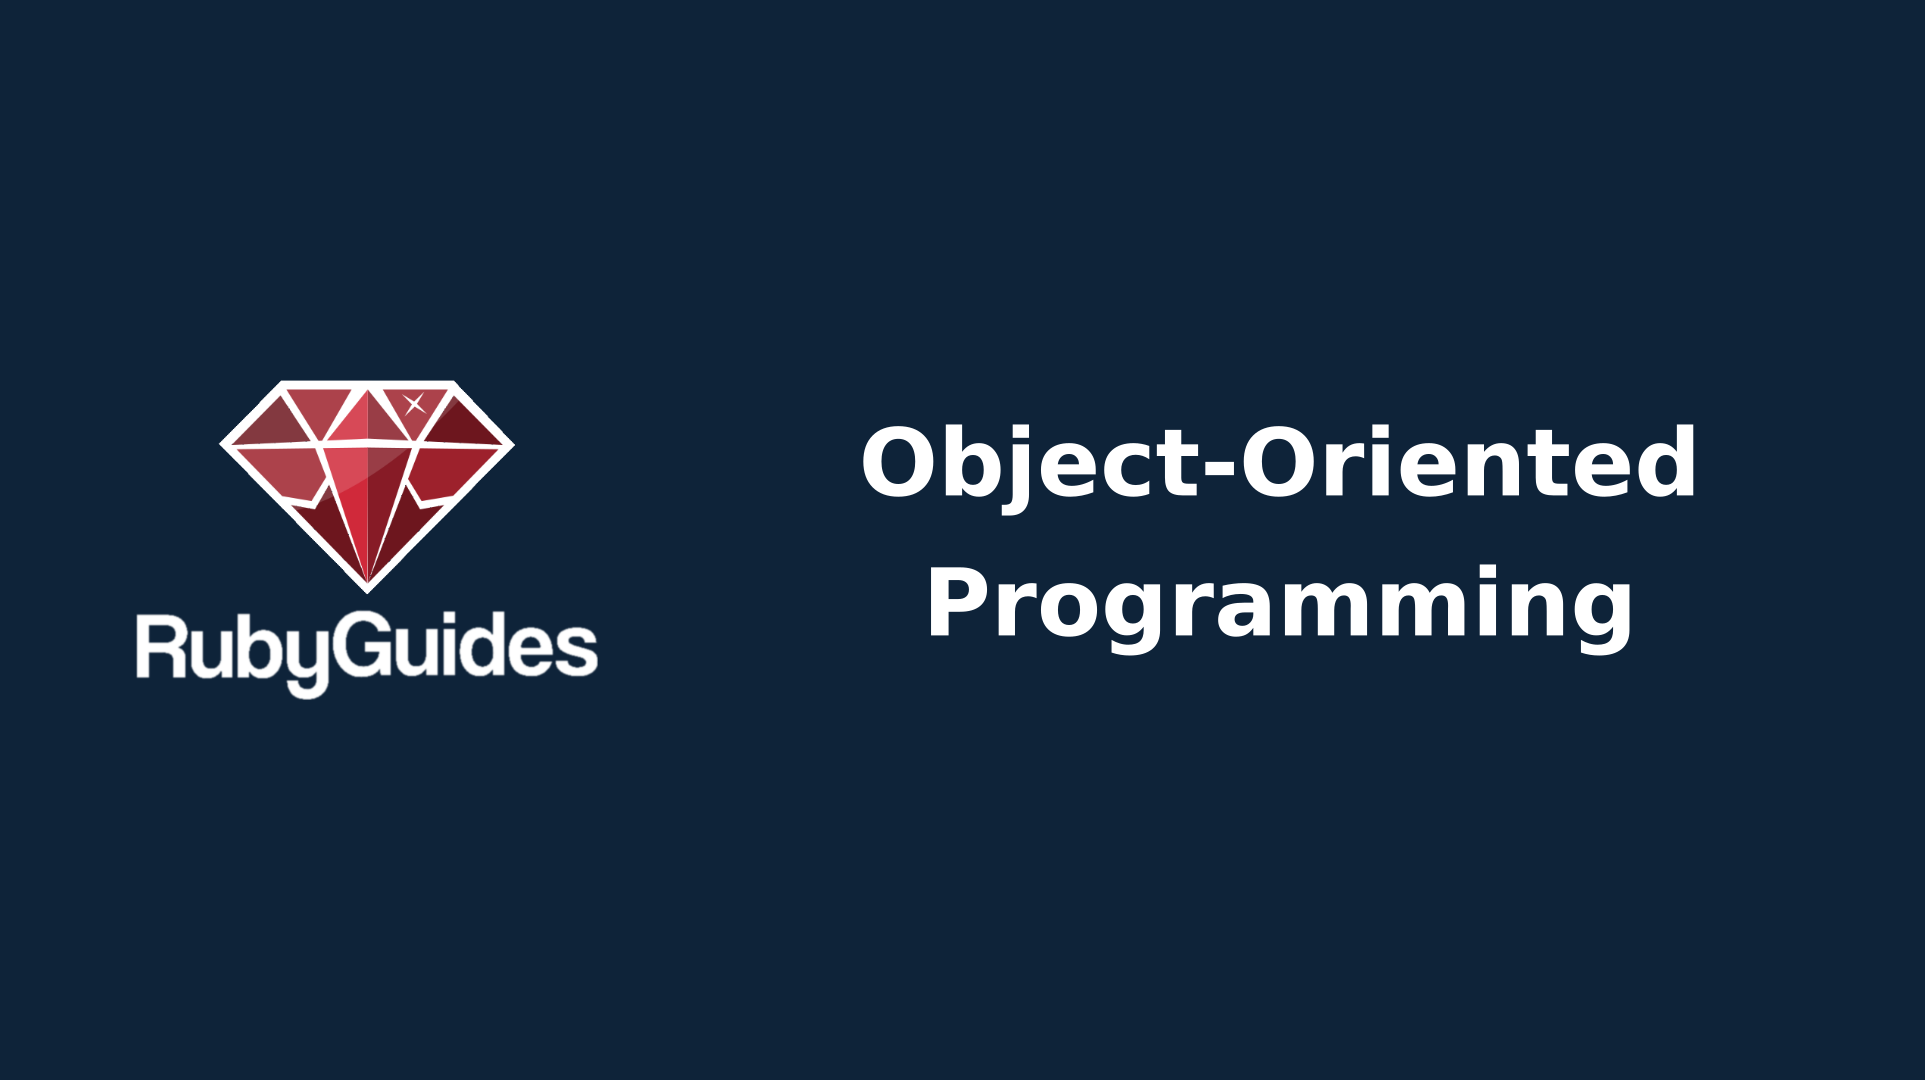 Object-Oriented Programming in Ruby - RubyGuides